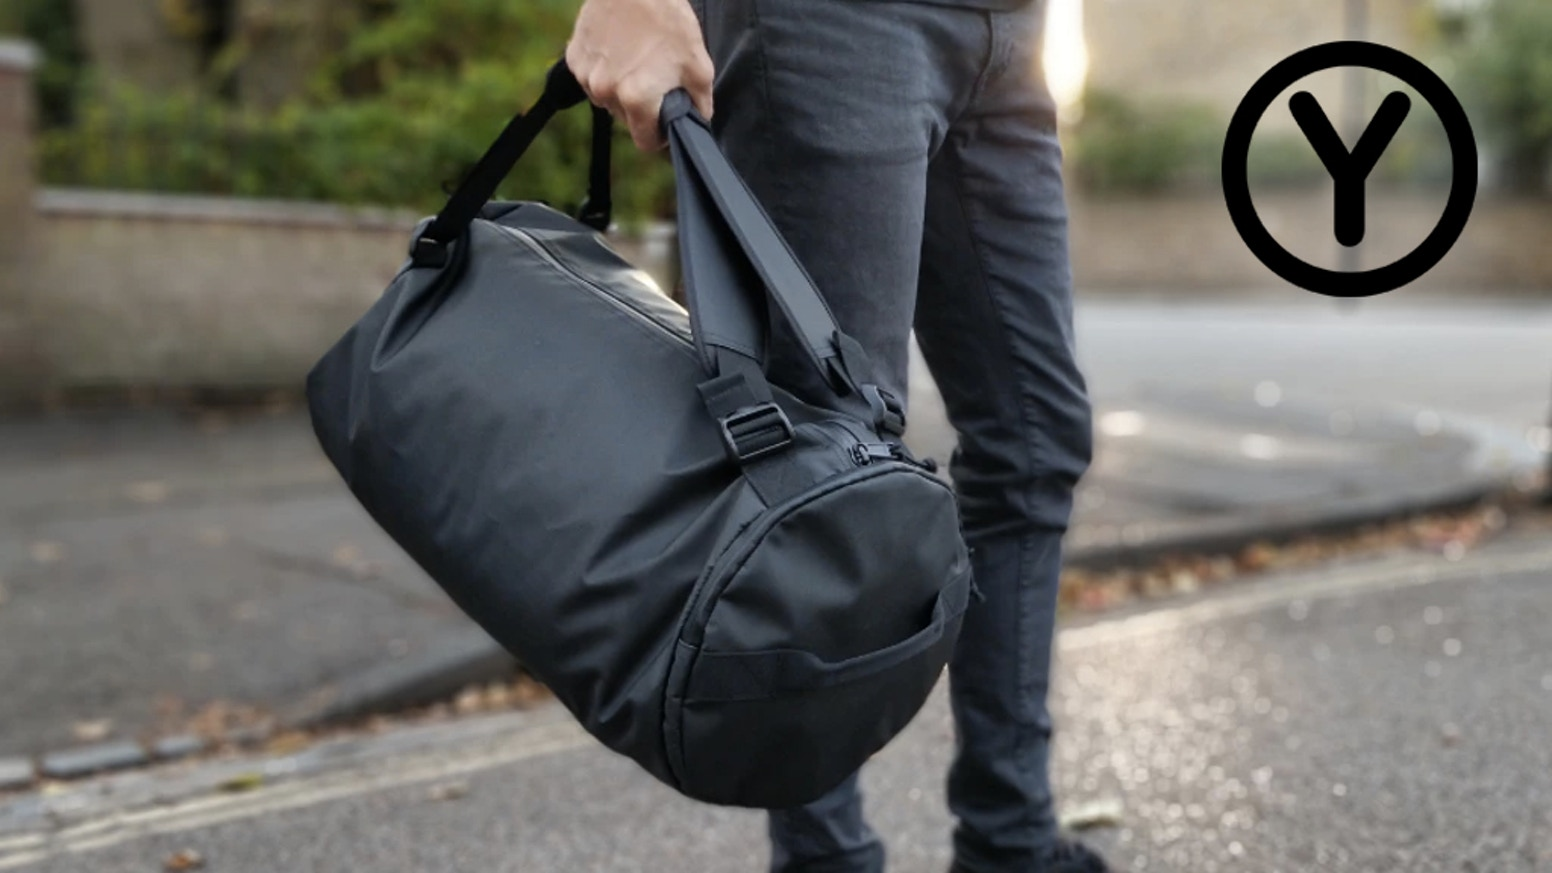 a6a2181667 Y Duffle Bag - Urban Simplicity. Weekend bag. Gym bag. Backpack.  Minimalist. Strong. Affordable. Use discount